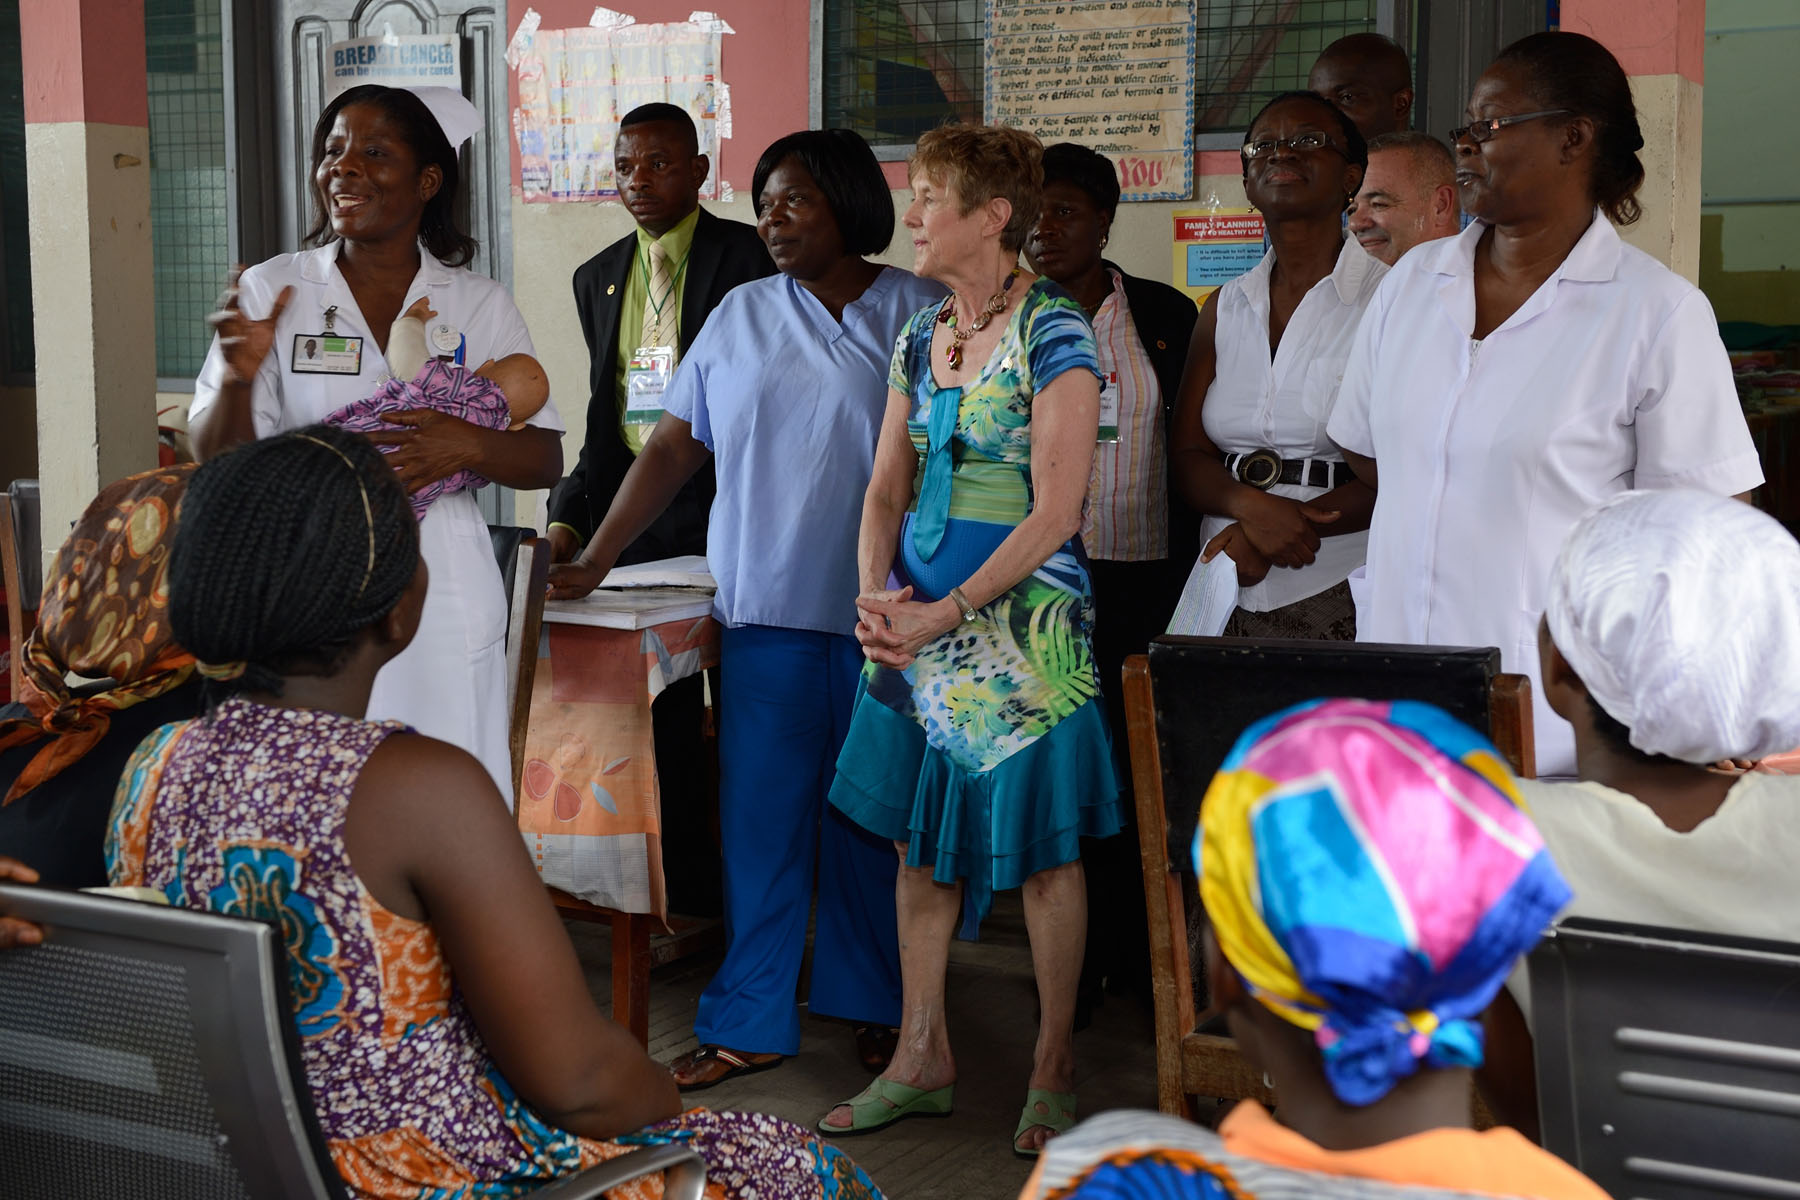 Her Excellency participated in a course on maternity skills for Ghanaian women.